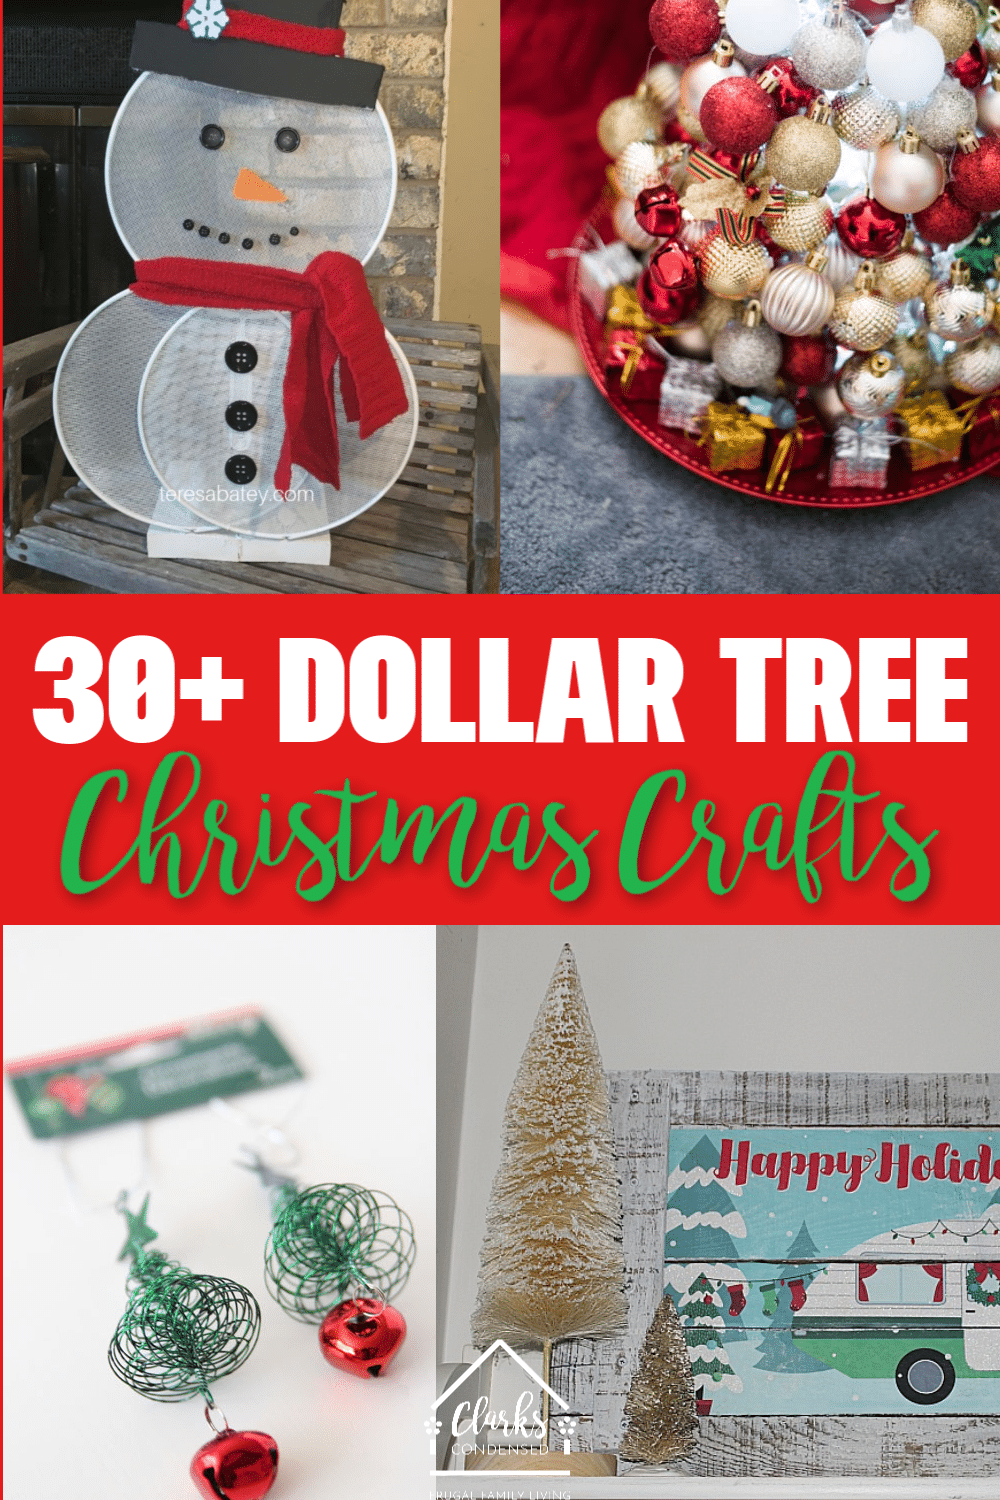 30+ Dollar Tree Christmas Crafts to make this holiday season! #dollartree #dollarstore #christmas #dollartreechristmas via @clarkscondensed